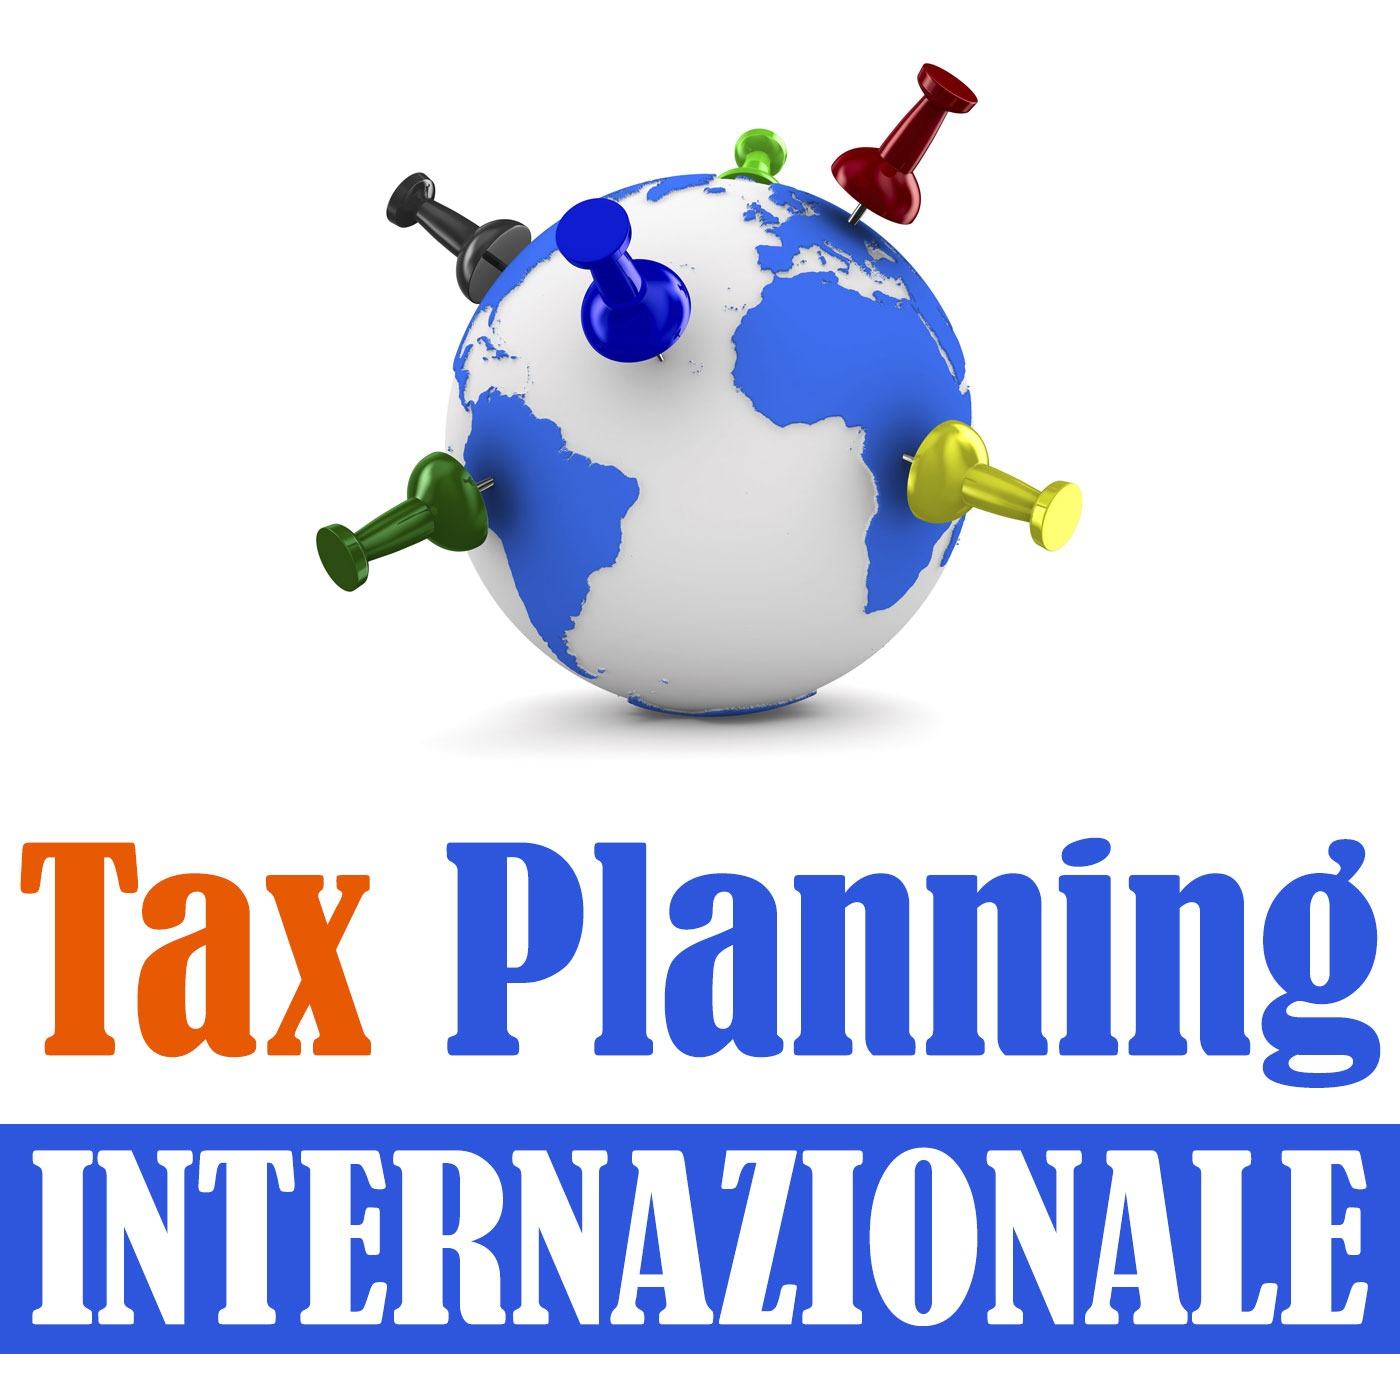 Tax Planning Internazionale